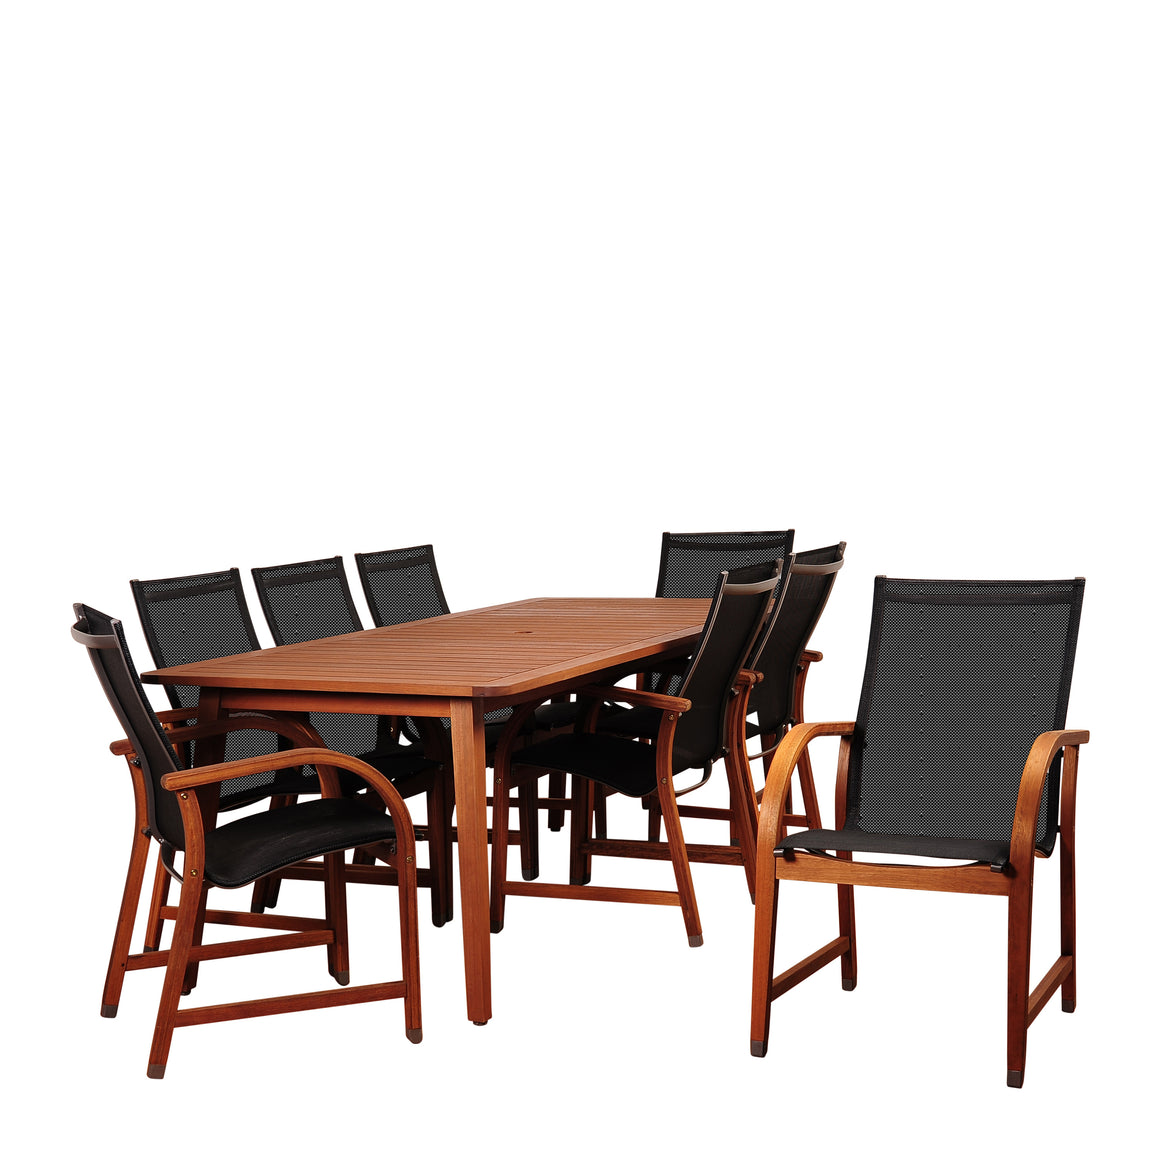 Amazonia Bahamas 9 Piece Eucalyptus Rectangular Dining Set , International Home Miami- grayburd